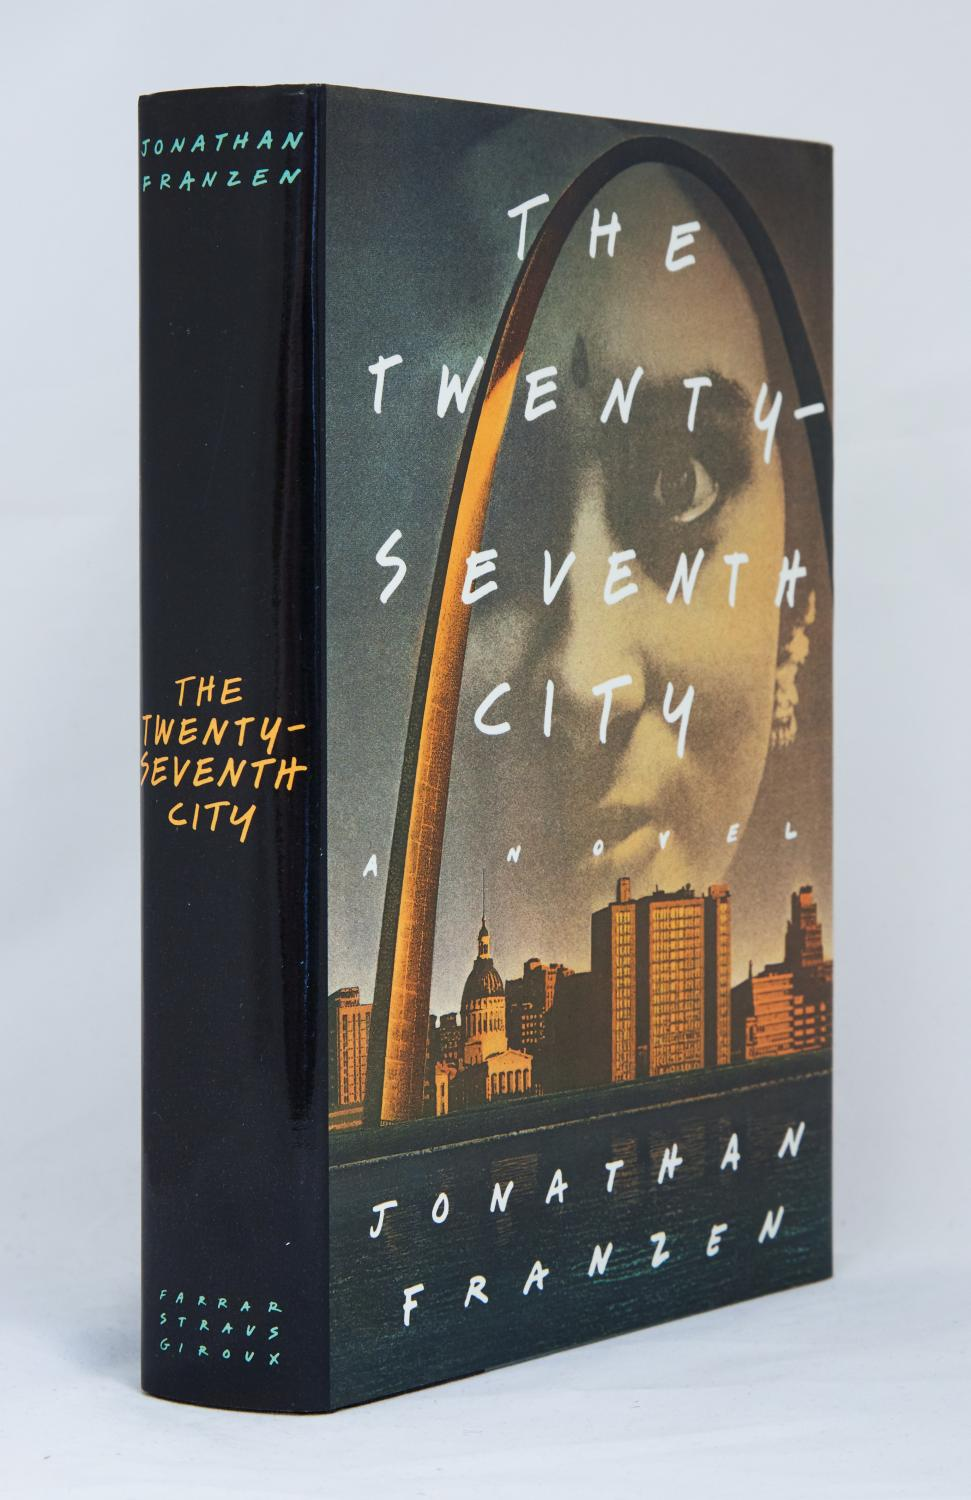 The Twenty-Seventh City. A novel: Franzen, Jonathan